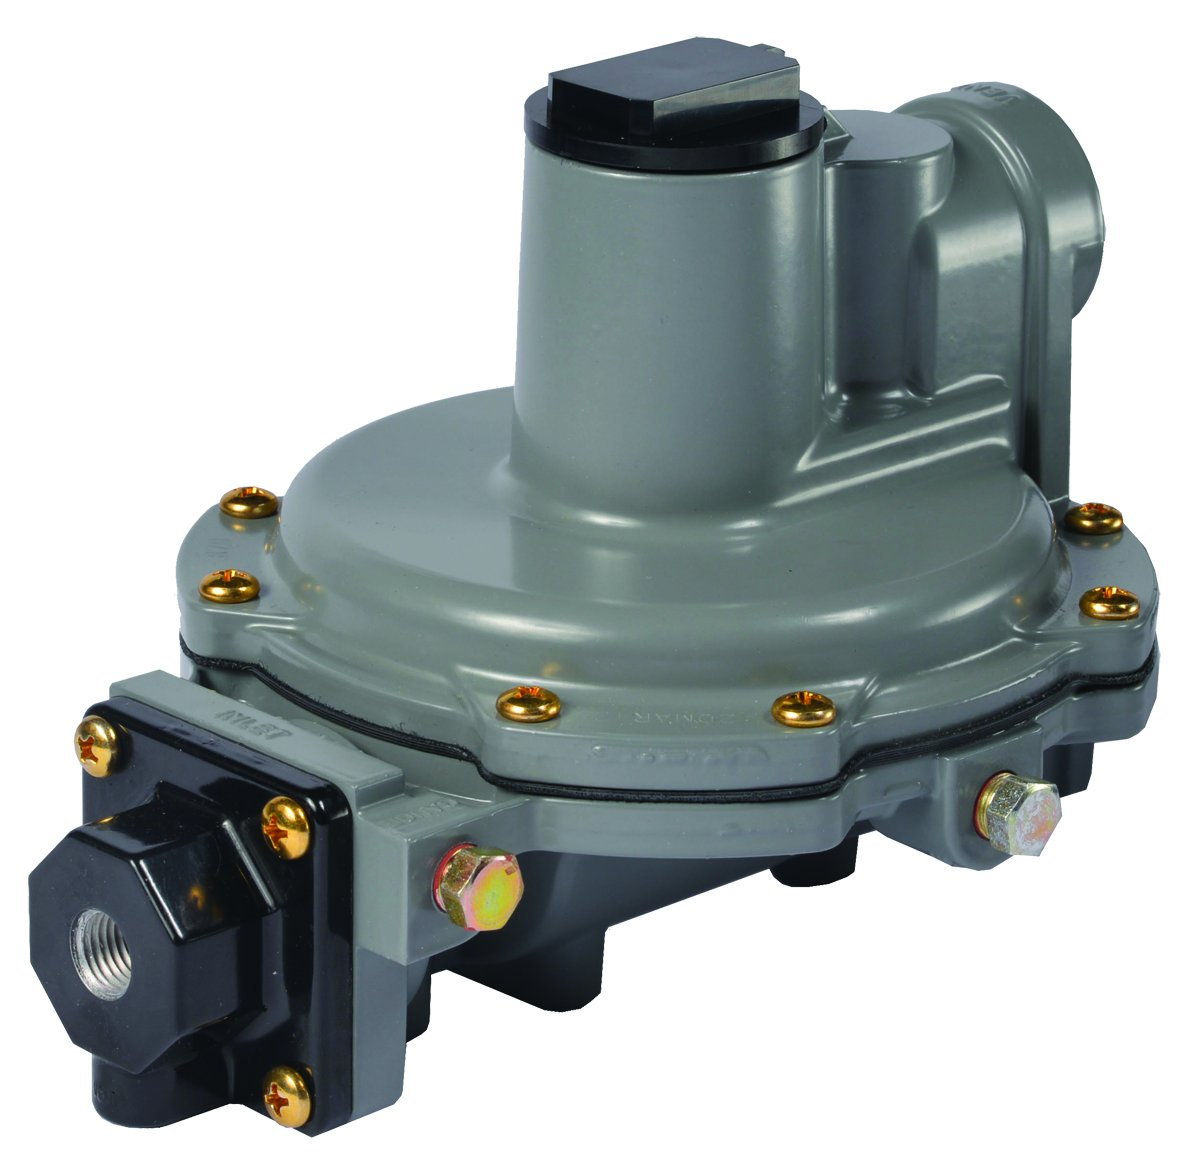 "Emerson-Fisher LP-Gas Equipment R632A-CFF Integral 2-Stage Regulator, 9-13"" W.C Spring, 1/4"" x 3/4"" NPT"